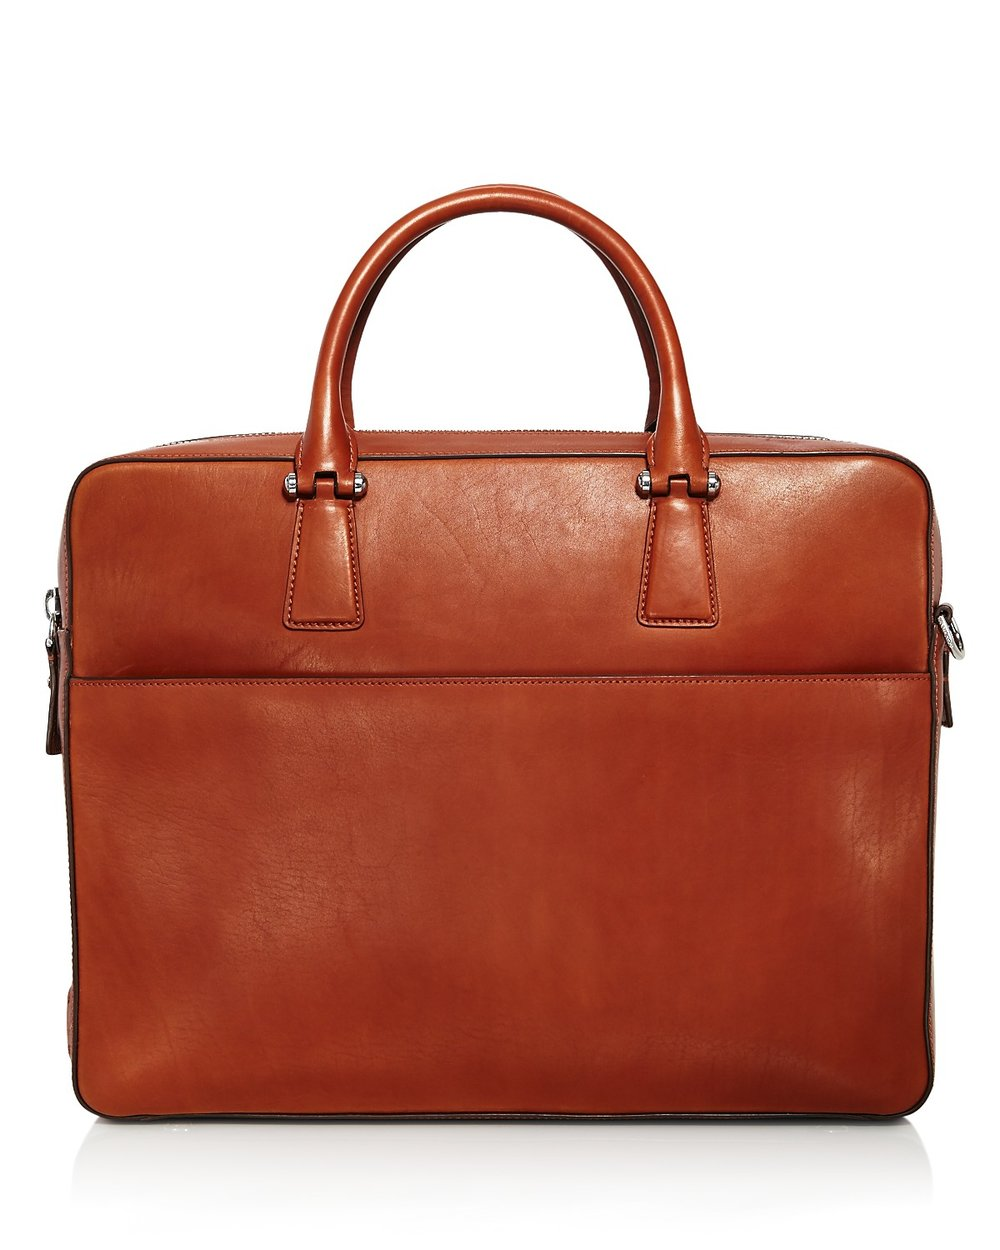 Cole Haan Lawford Leather Briefcase  - It's time for an upgrade. Boost his professional image with this gorgeous briefcase that gets the job done.